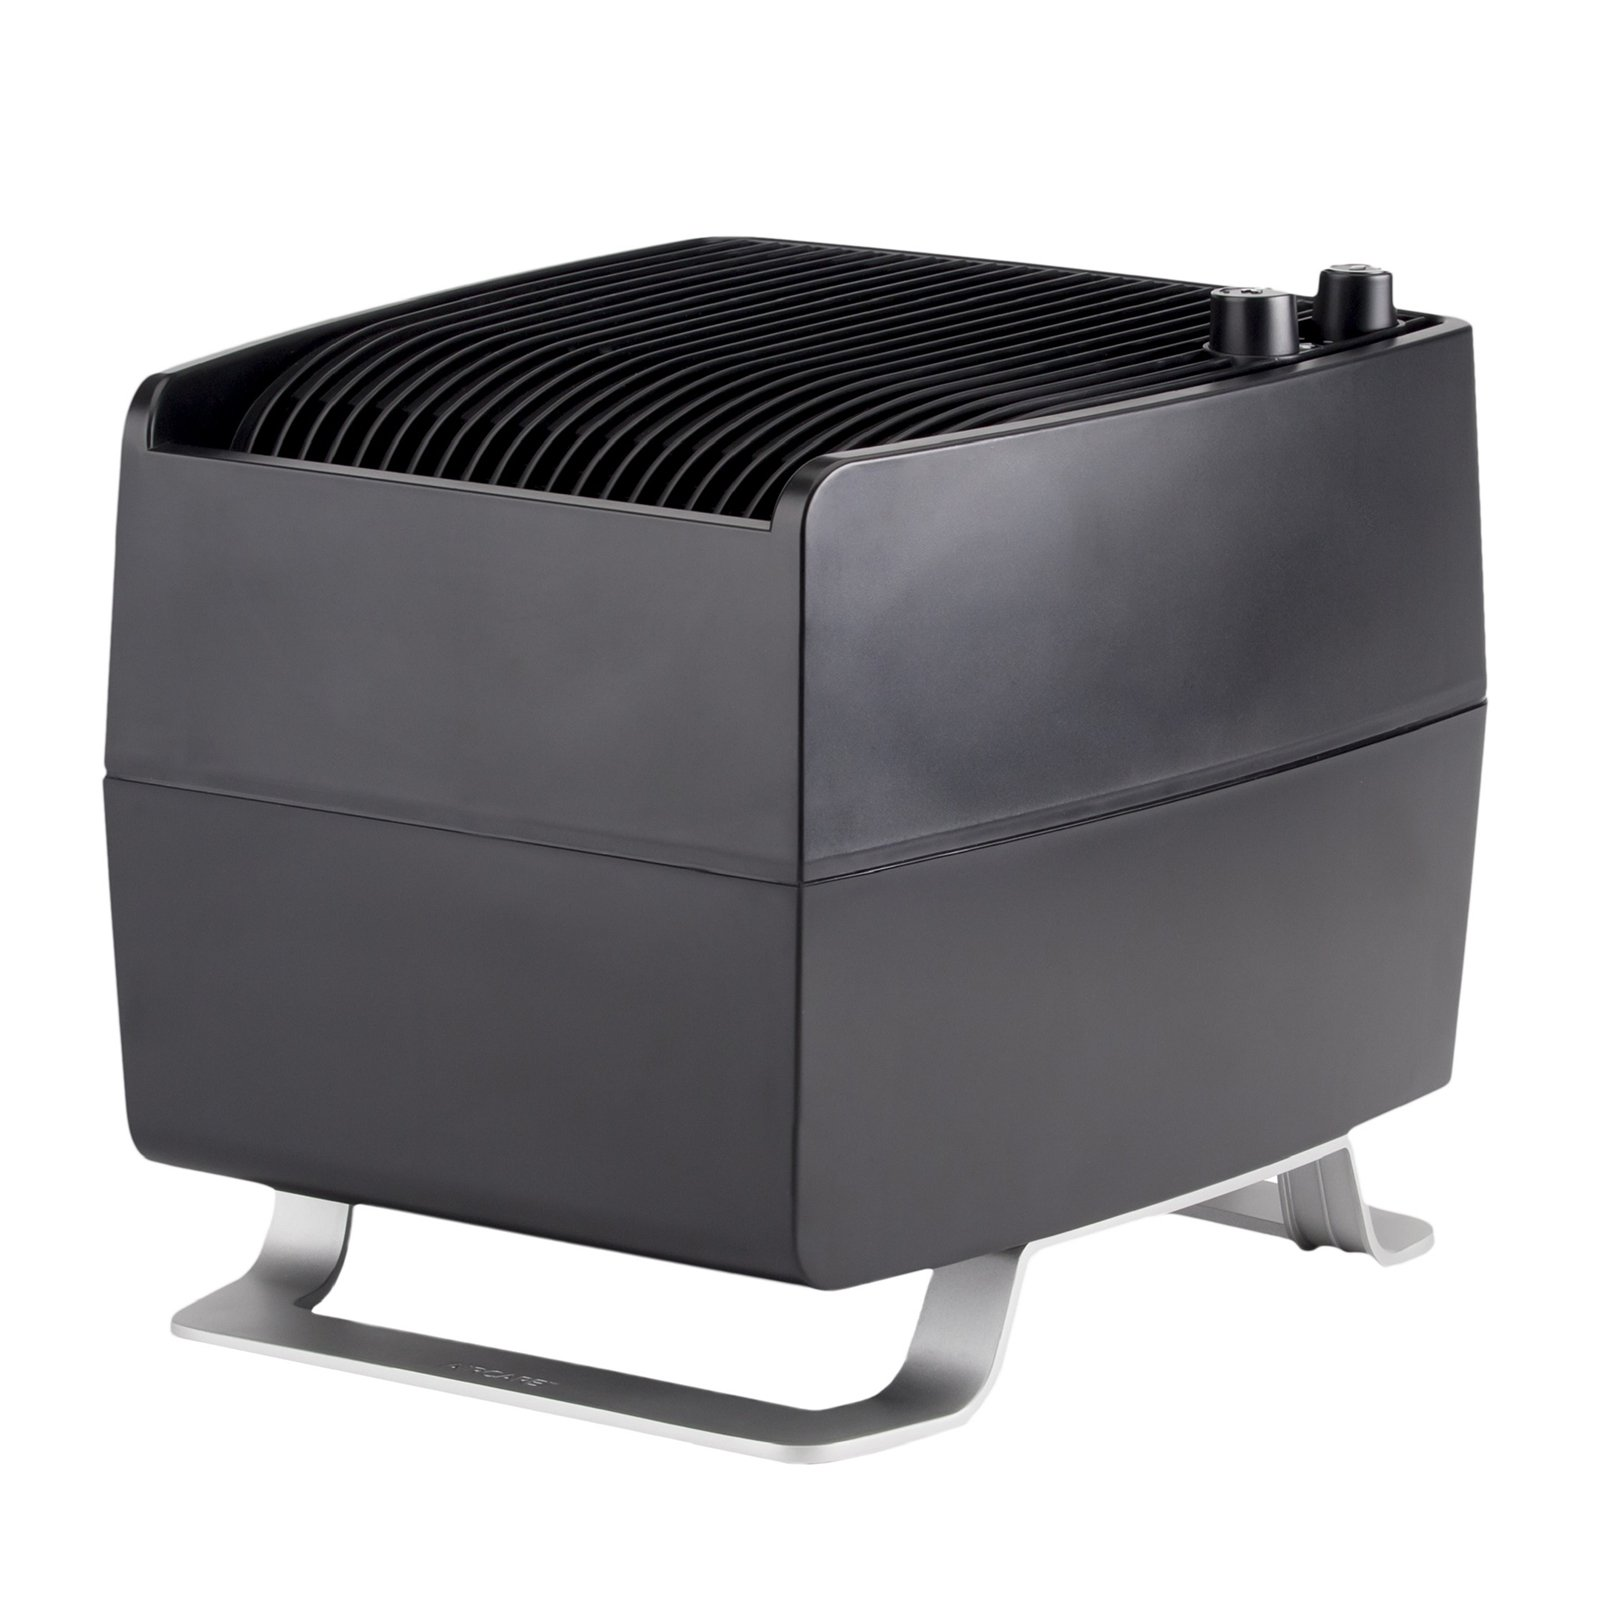 AIRCARE CM330ABLK Companion Tabletop Evaporative Humidifiers with Analog Controls for 1000 sq. ft. Black